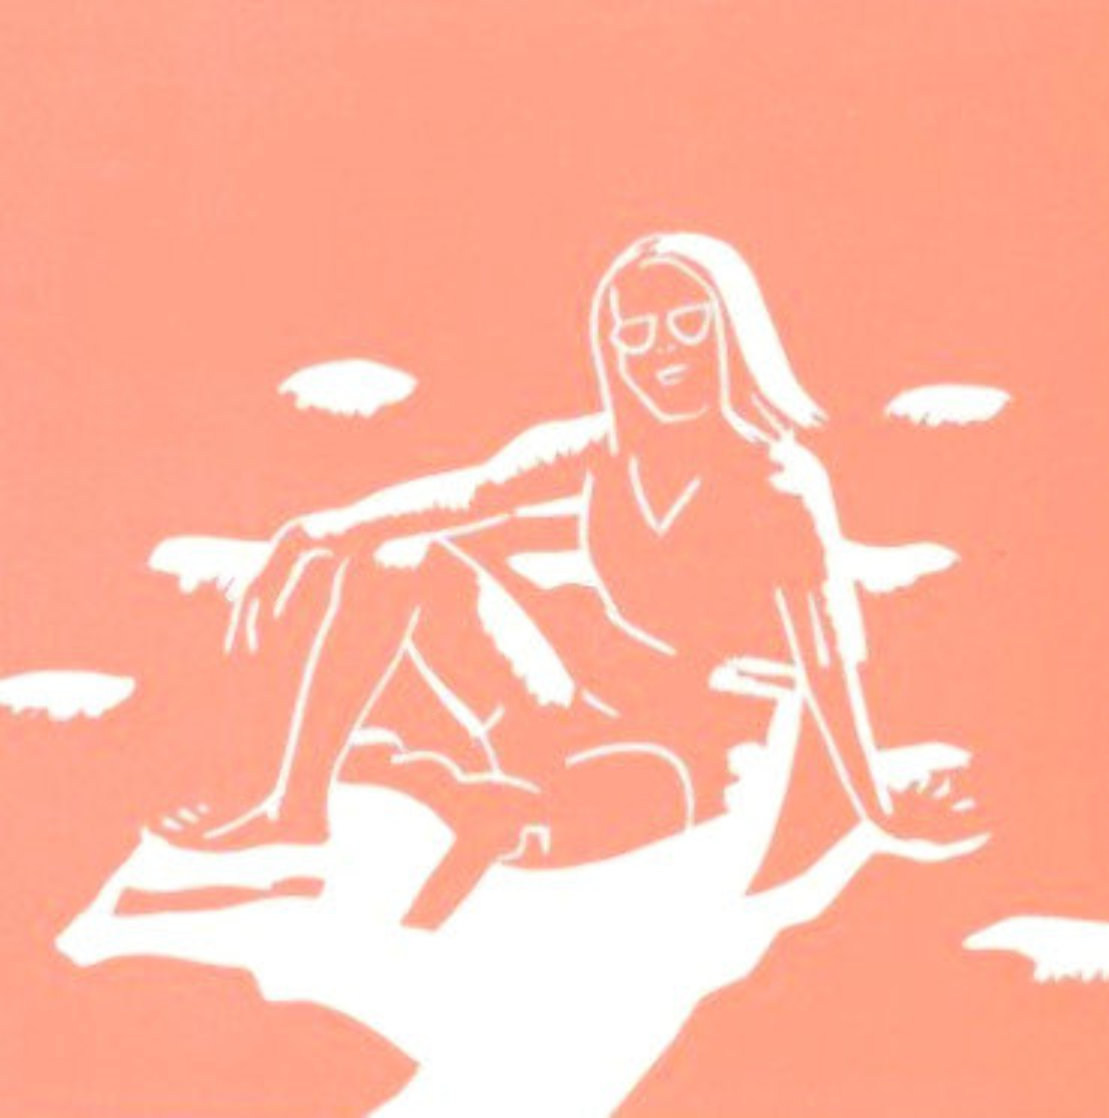 Lincolnville Labor Day (Ada) PP 1993  Limited Edition Print by Alex Katz